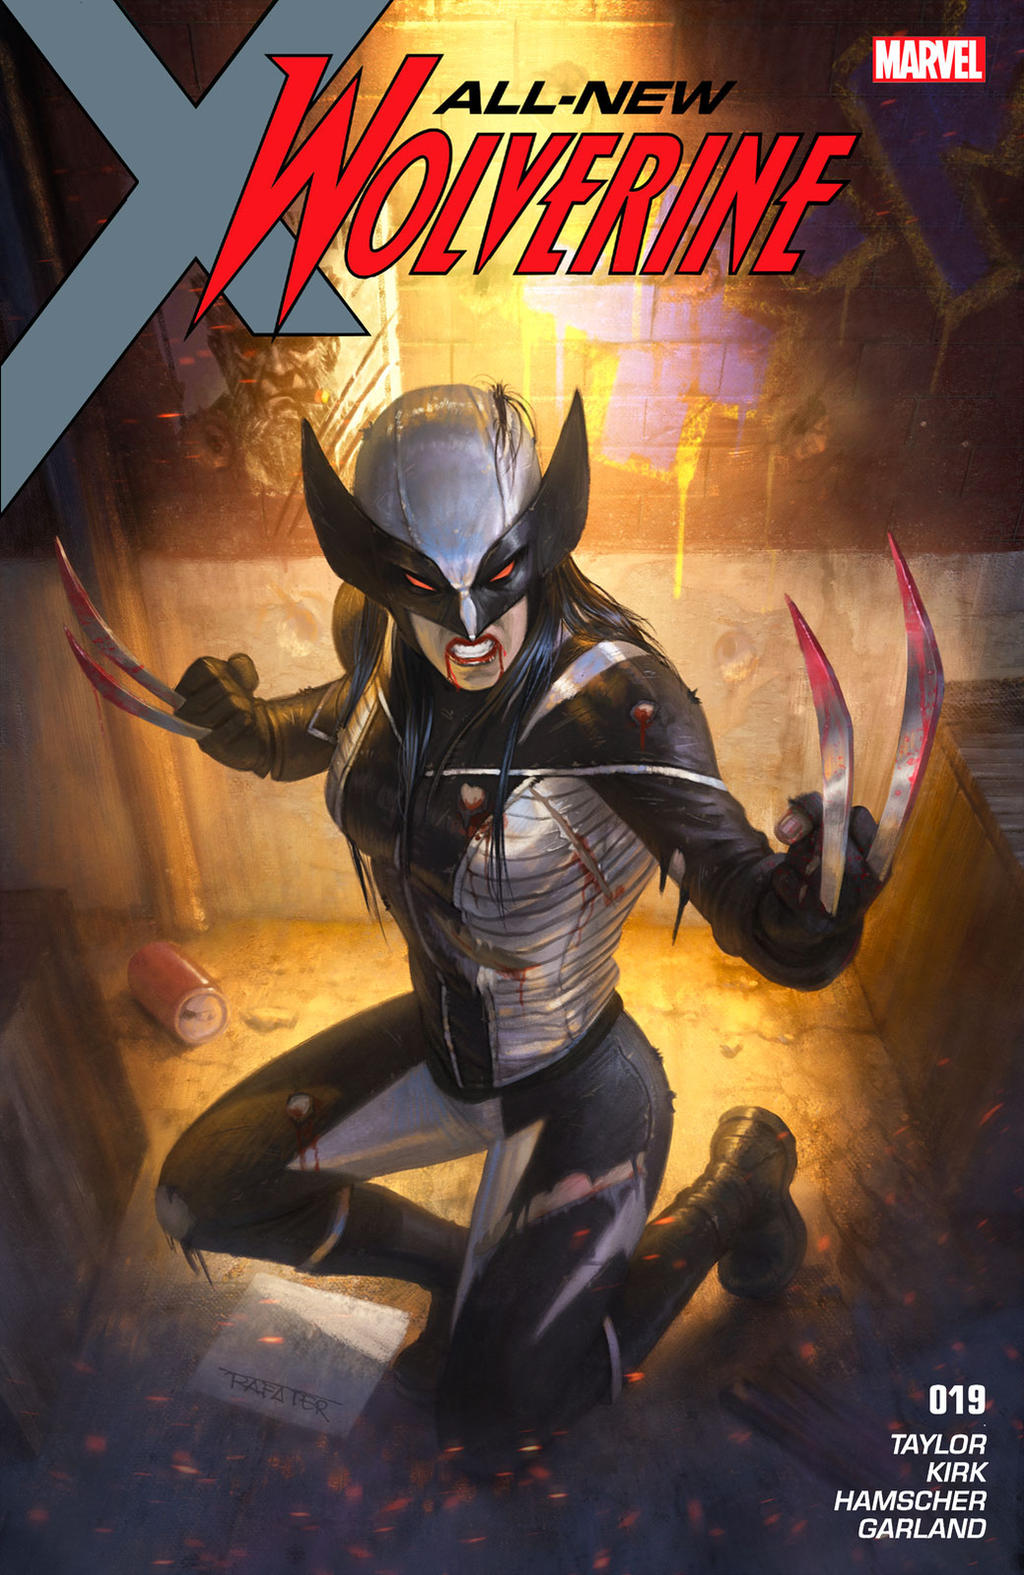 All new Wolverine cover by rafater